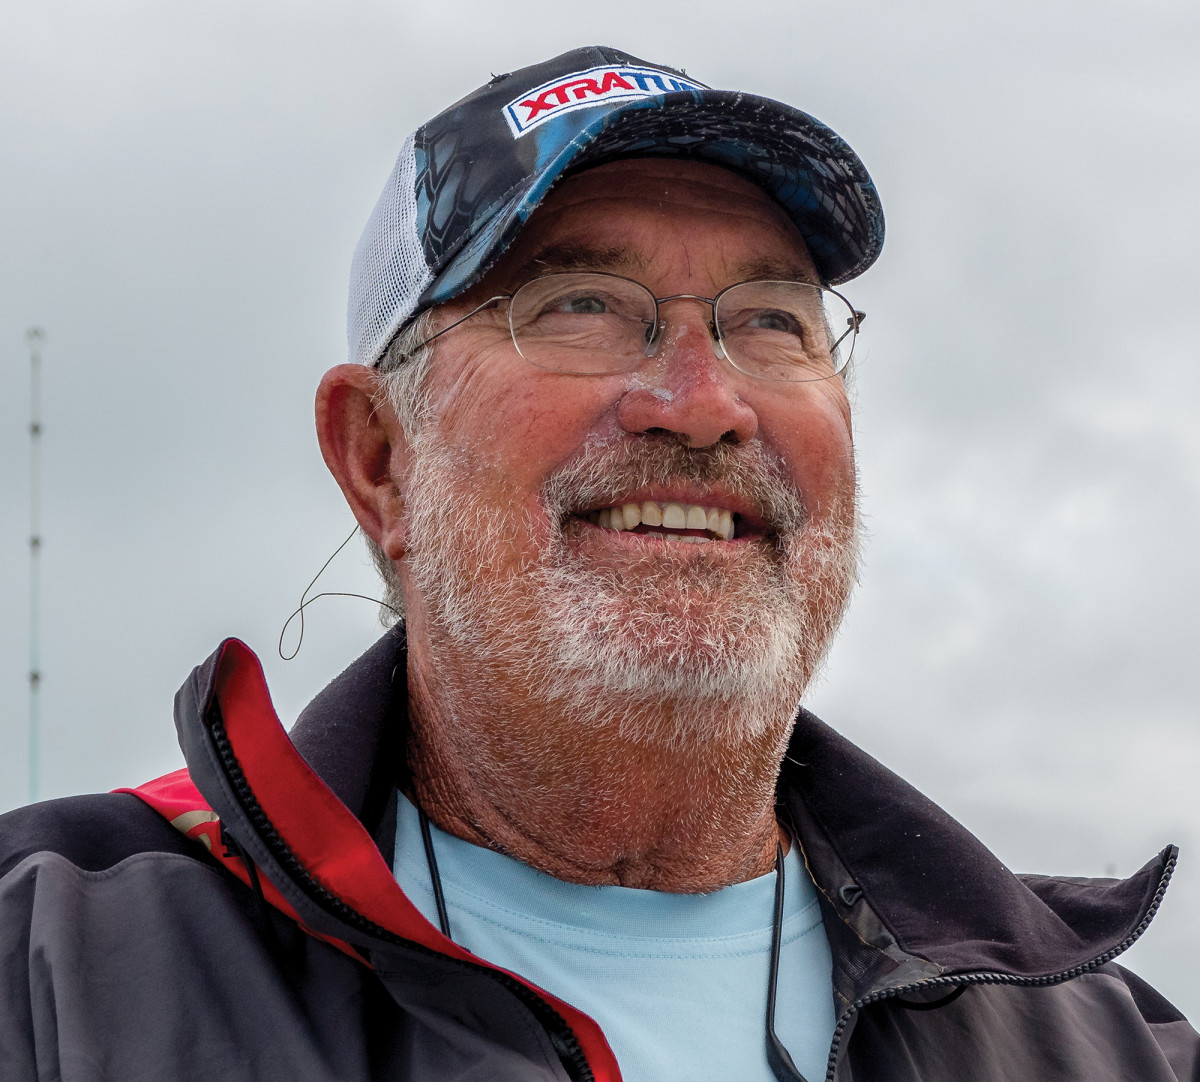 R.T. Trosset has been guiding light-tackle anglers out of Key West for more than 40 years.